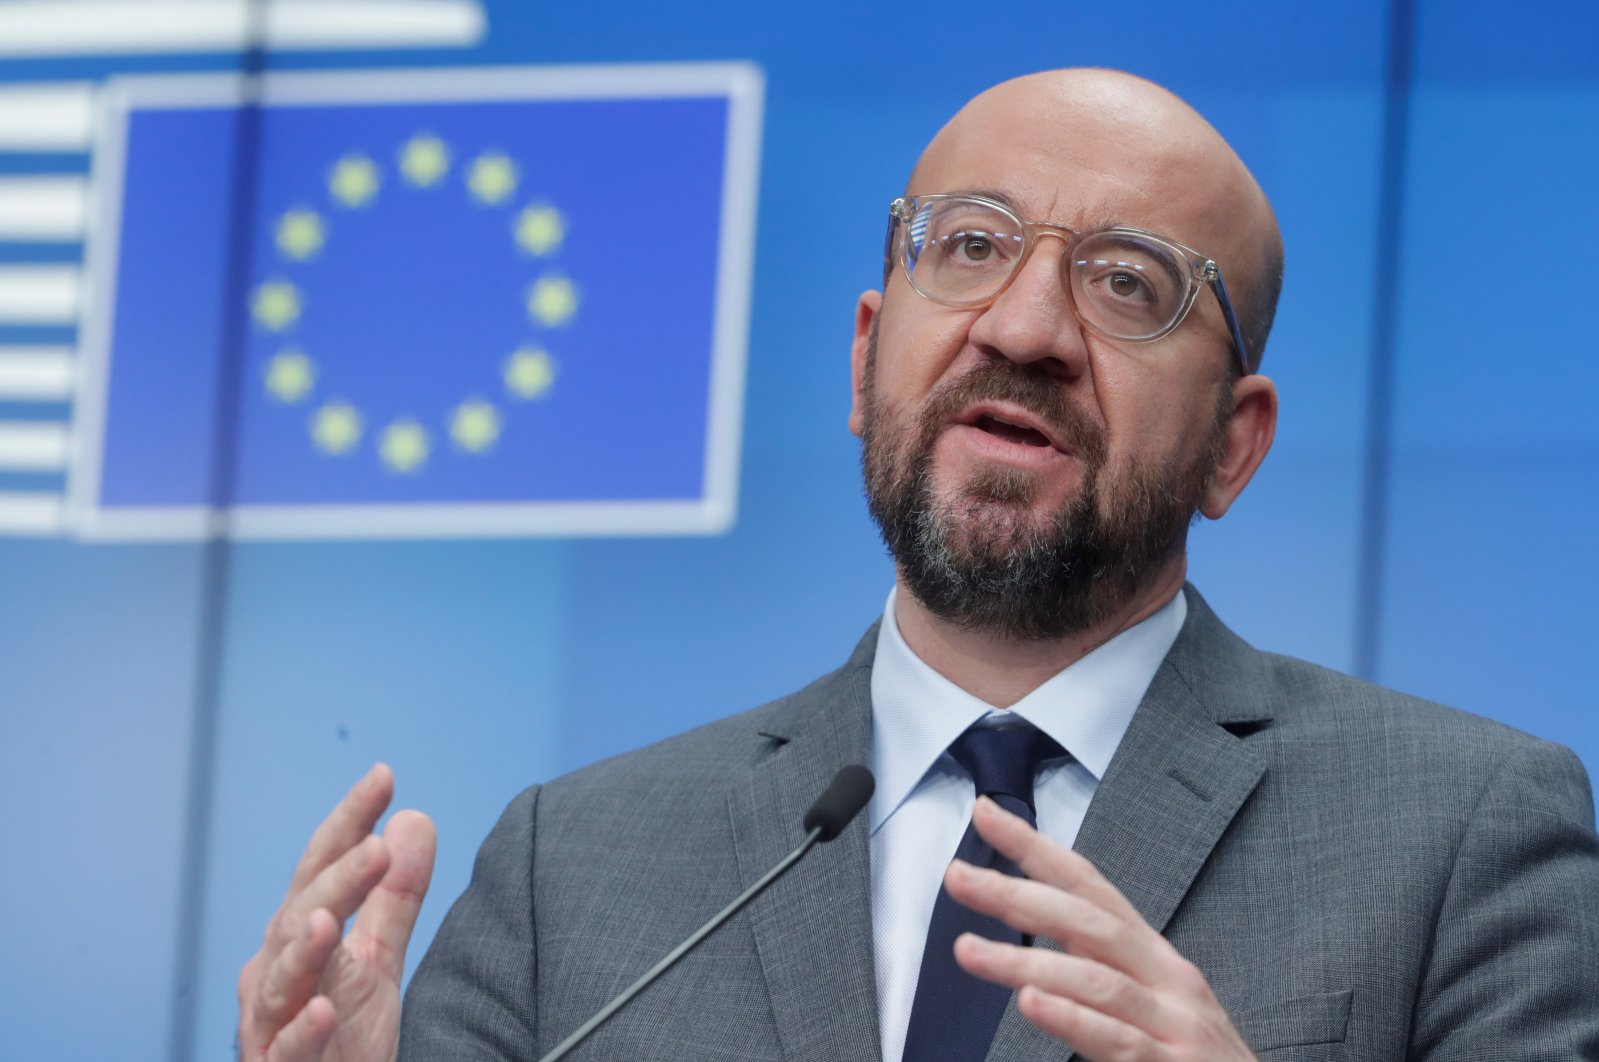 Charles Michel, President of European Council, gives a speech at the bloc's headquarters in Belgium's Brussels, Jan. 21 2021. (Reuters Photo)